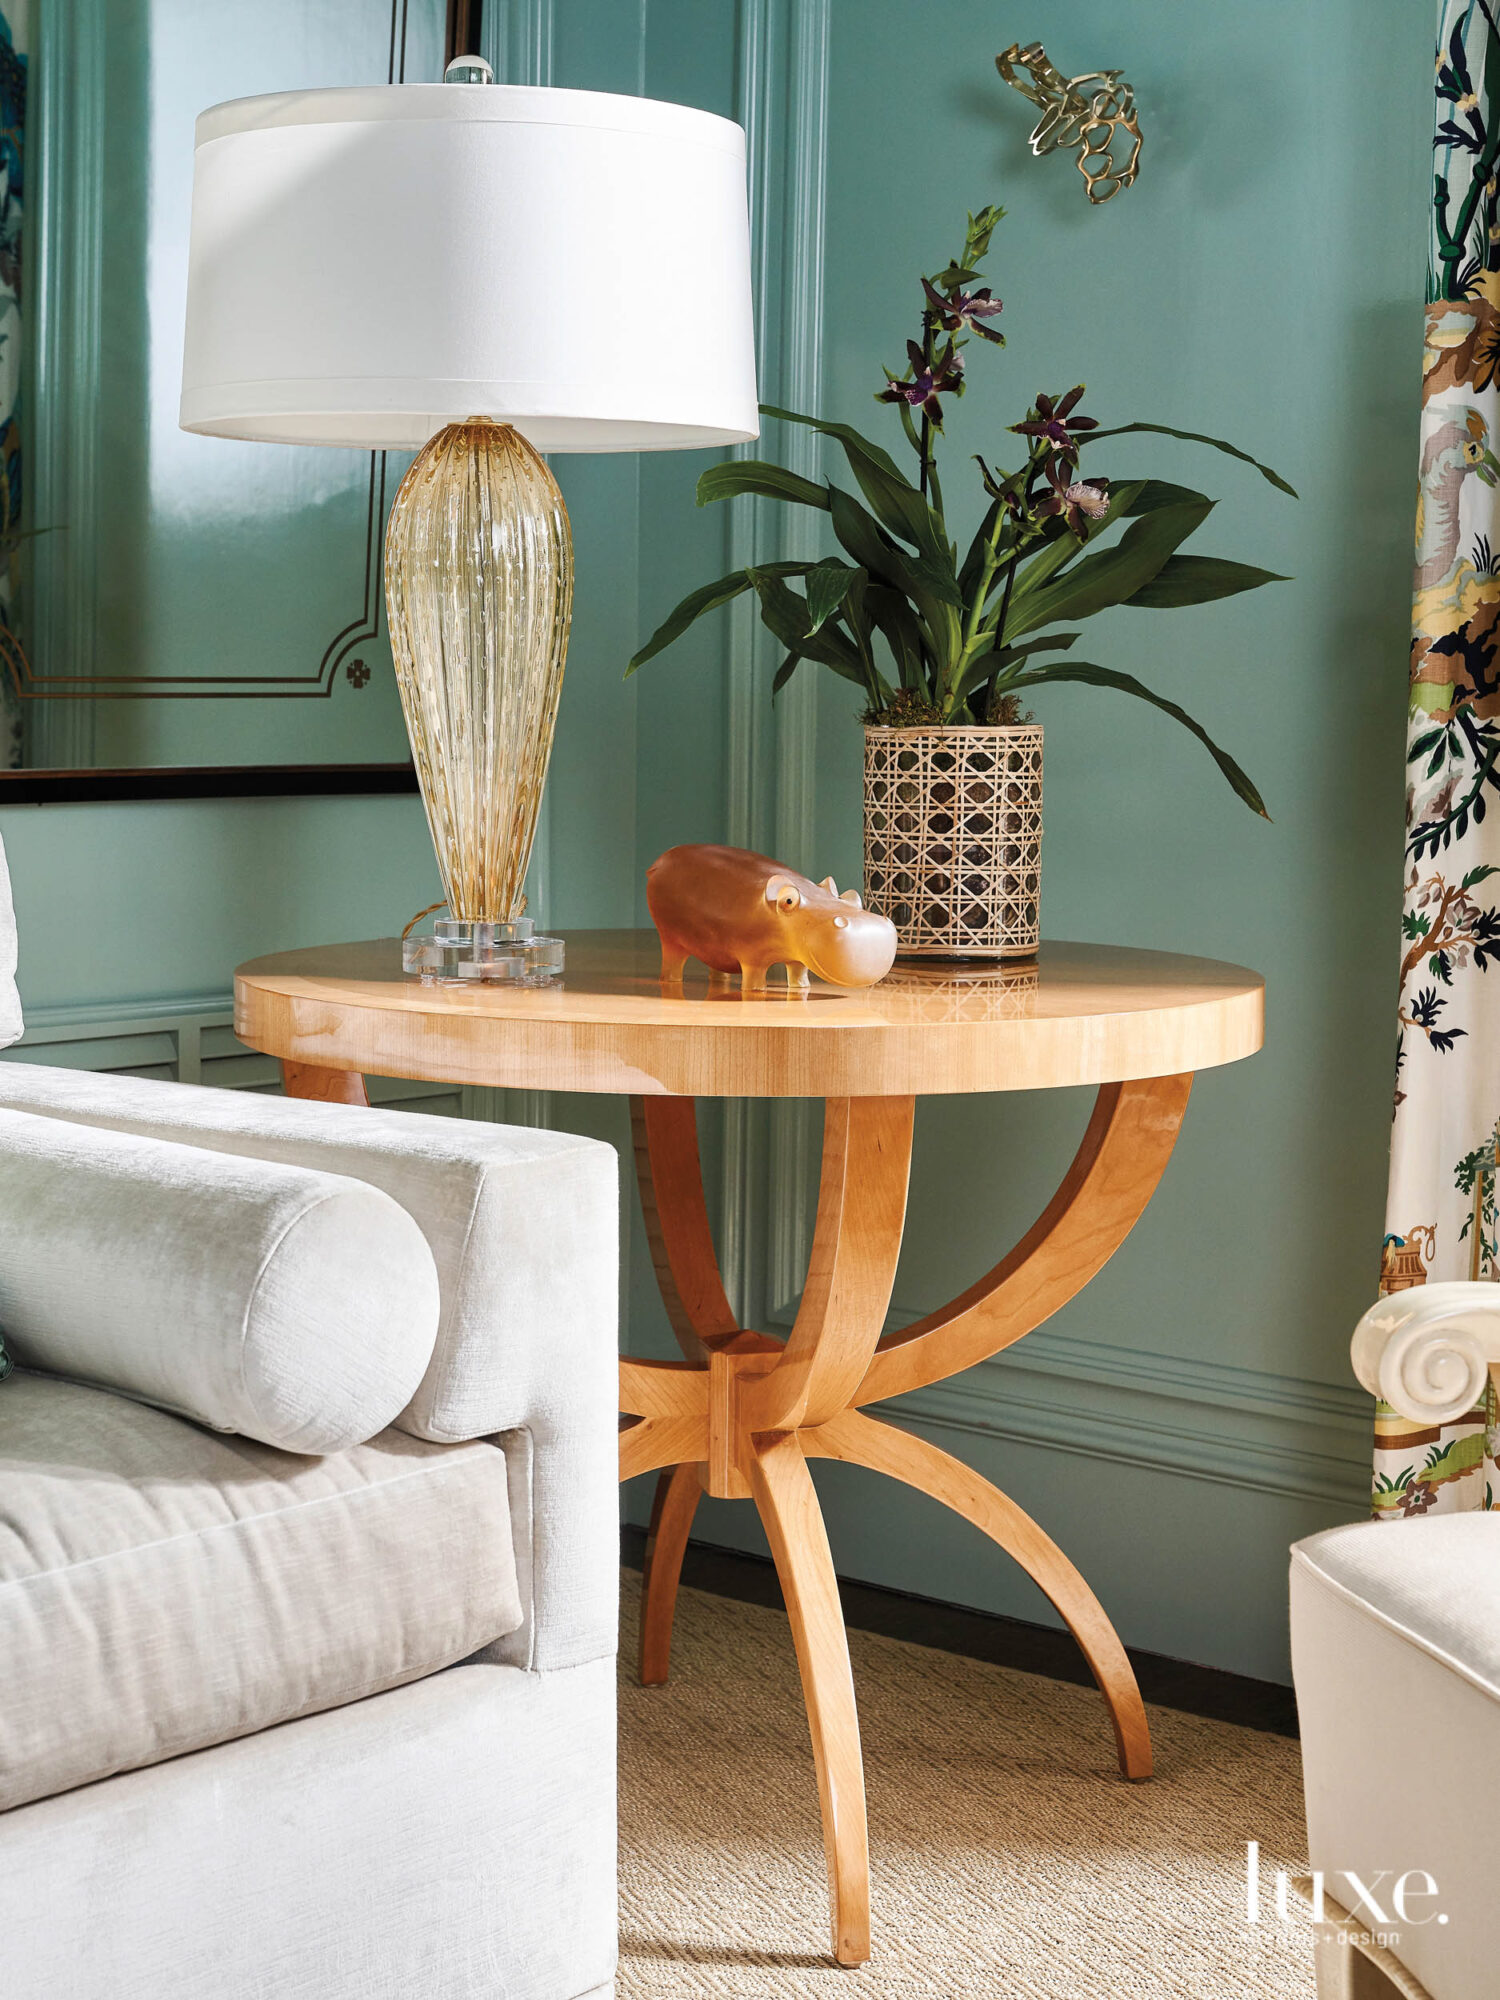 A Dallas-Based Designer Grows Her Timeless Home Goods Line With More Refined Pieces